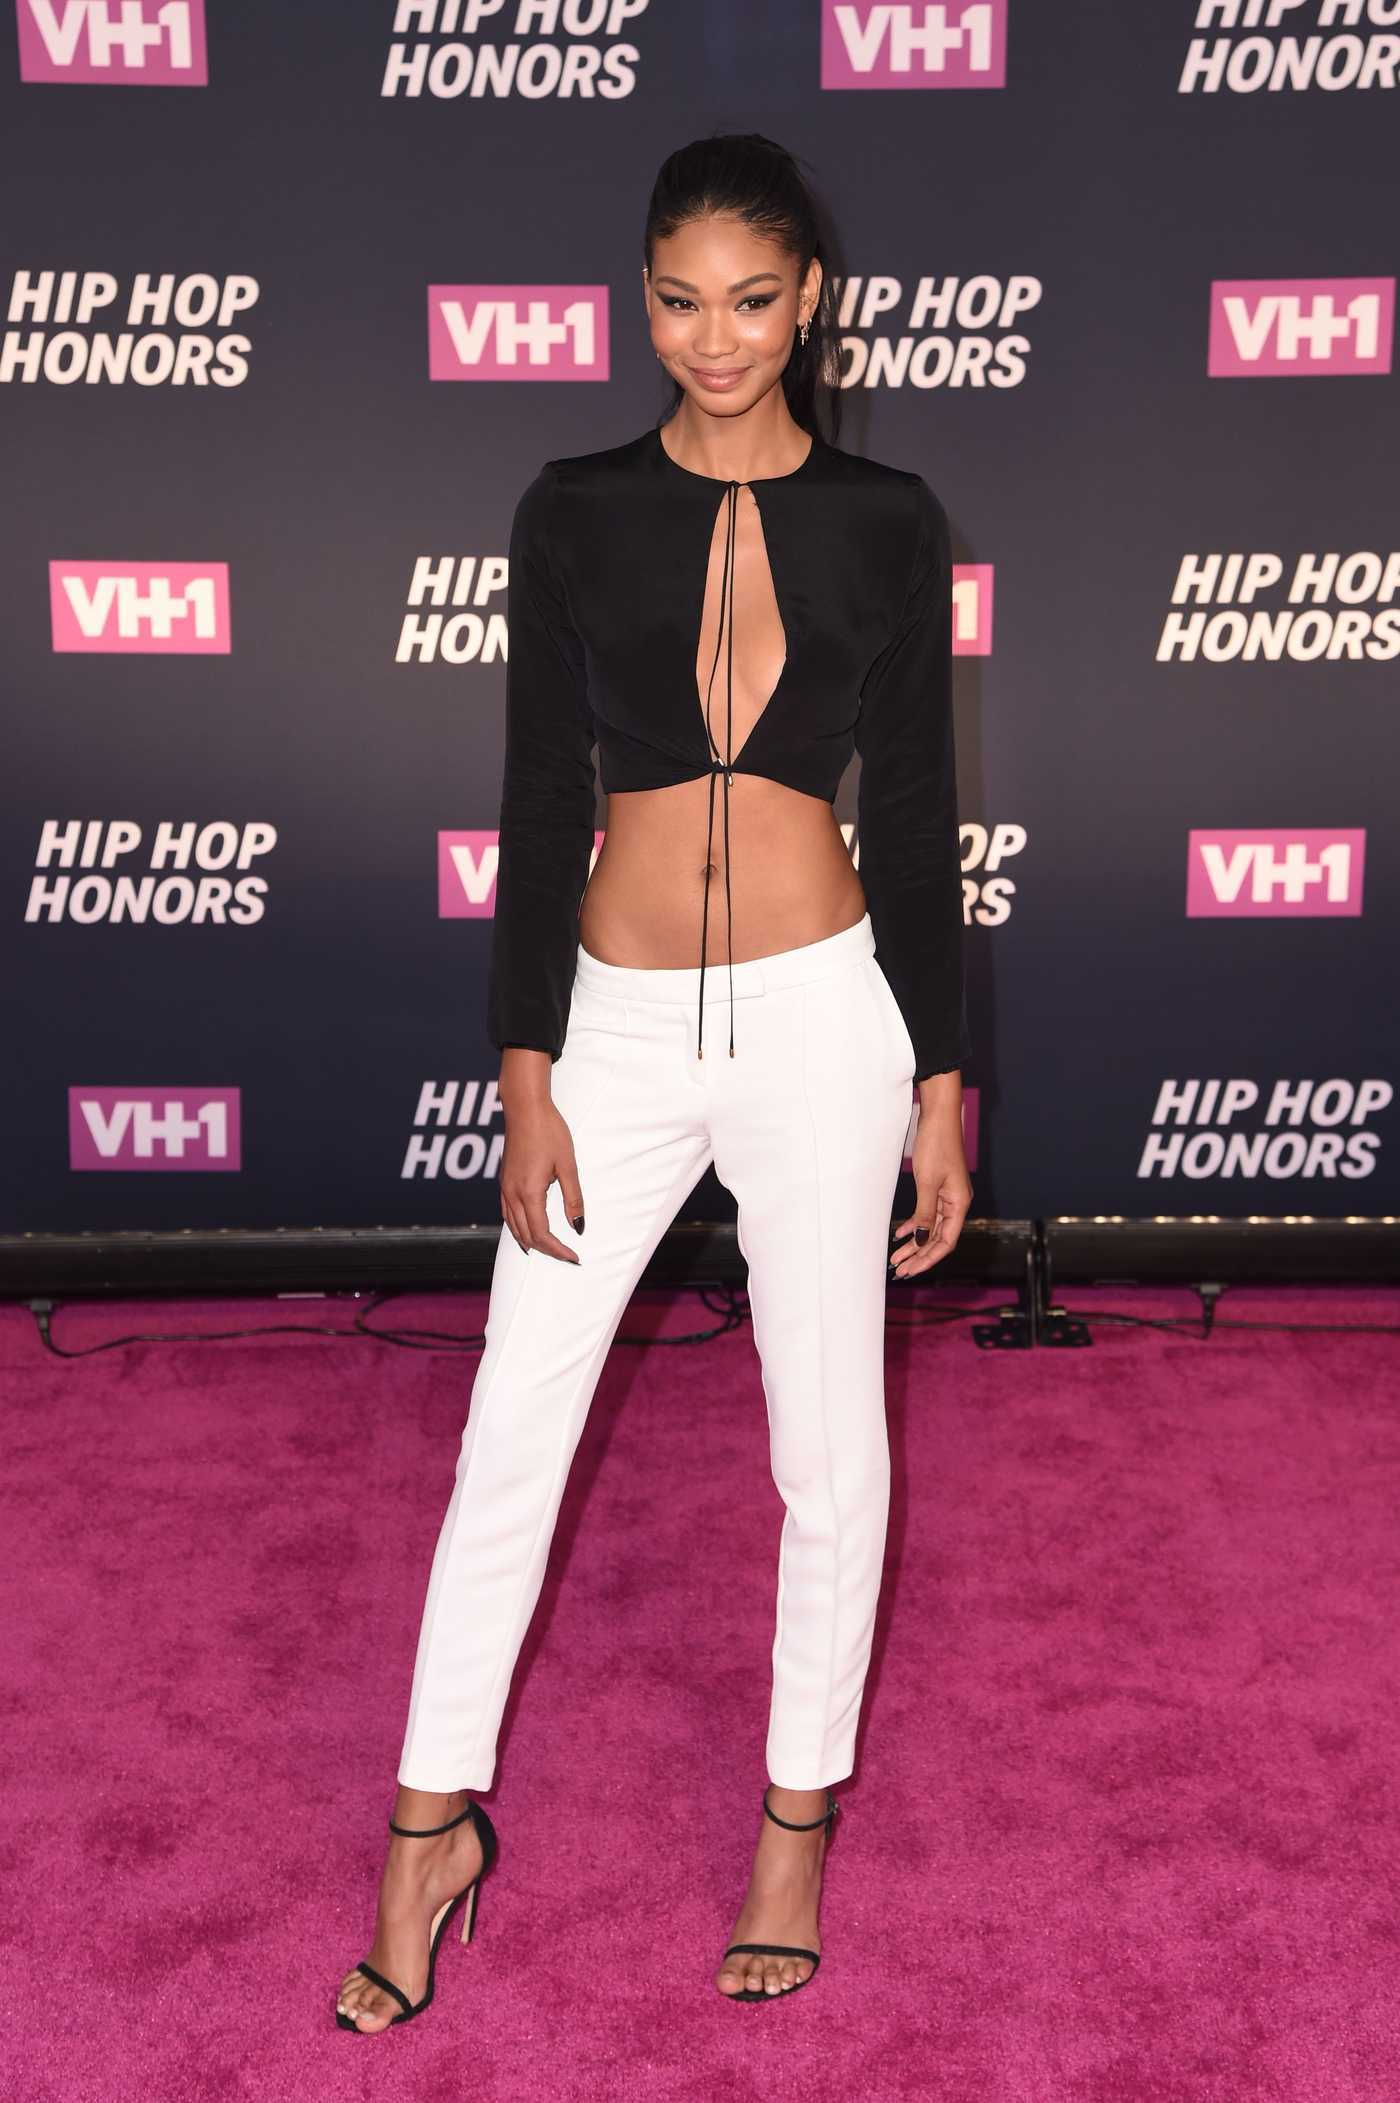 Chanel Iman at the VH1 Hip Hop Honors in New York City 07/11/2016